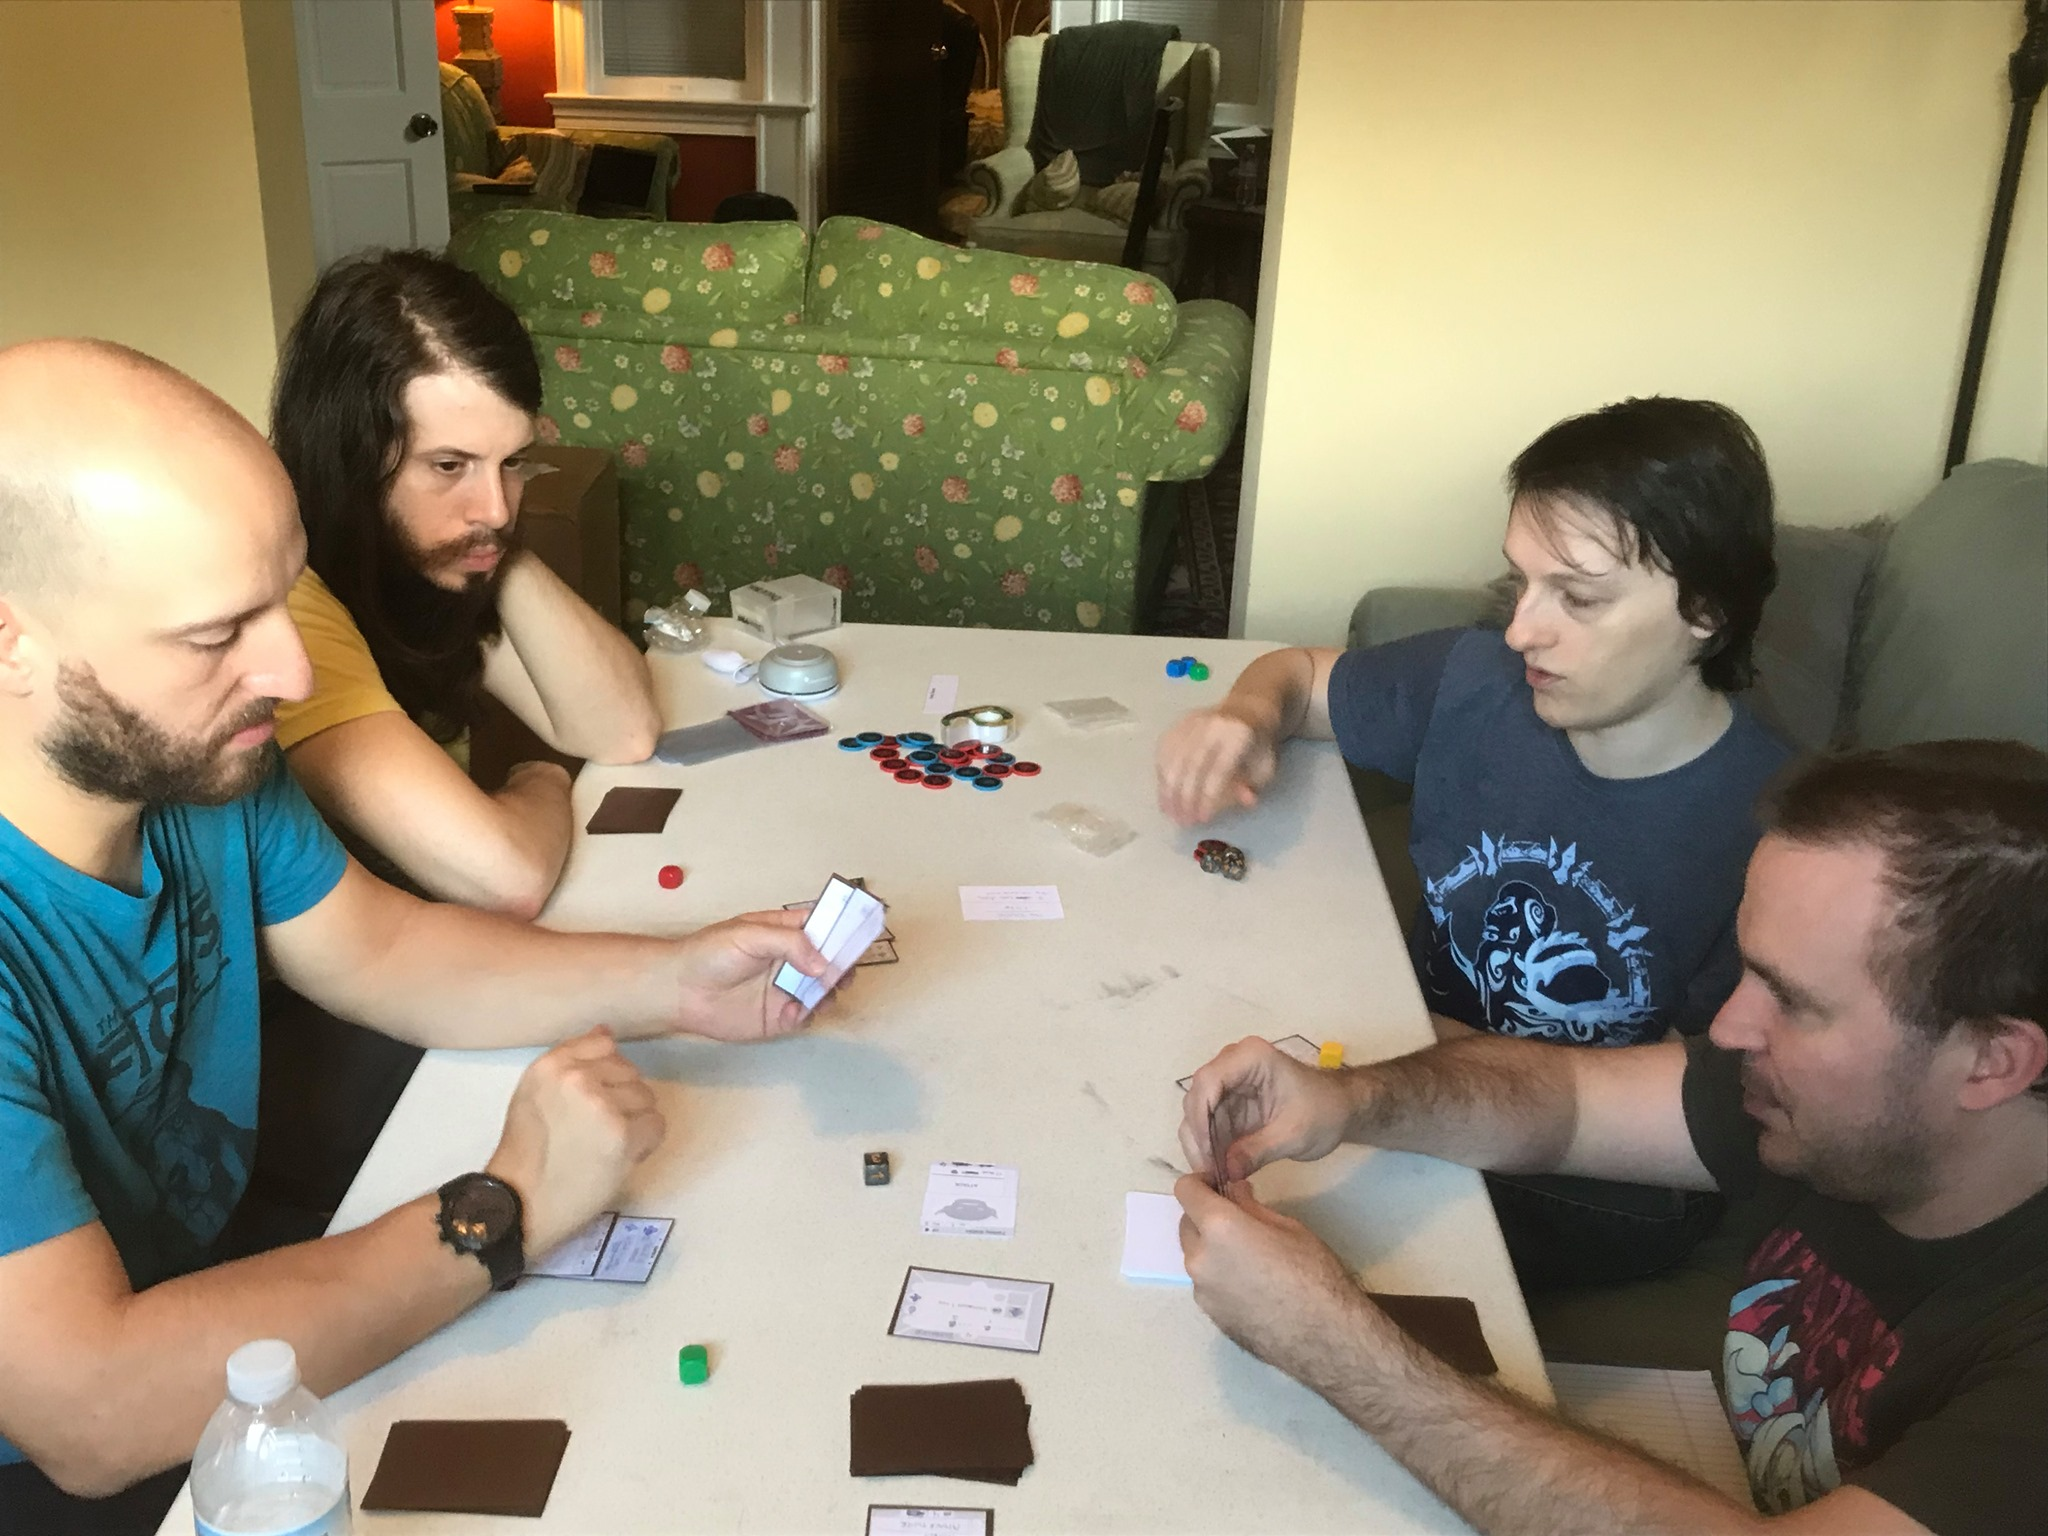 Early prototyping of a new card game!